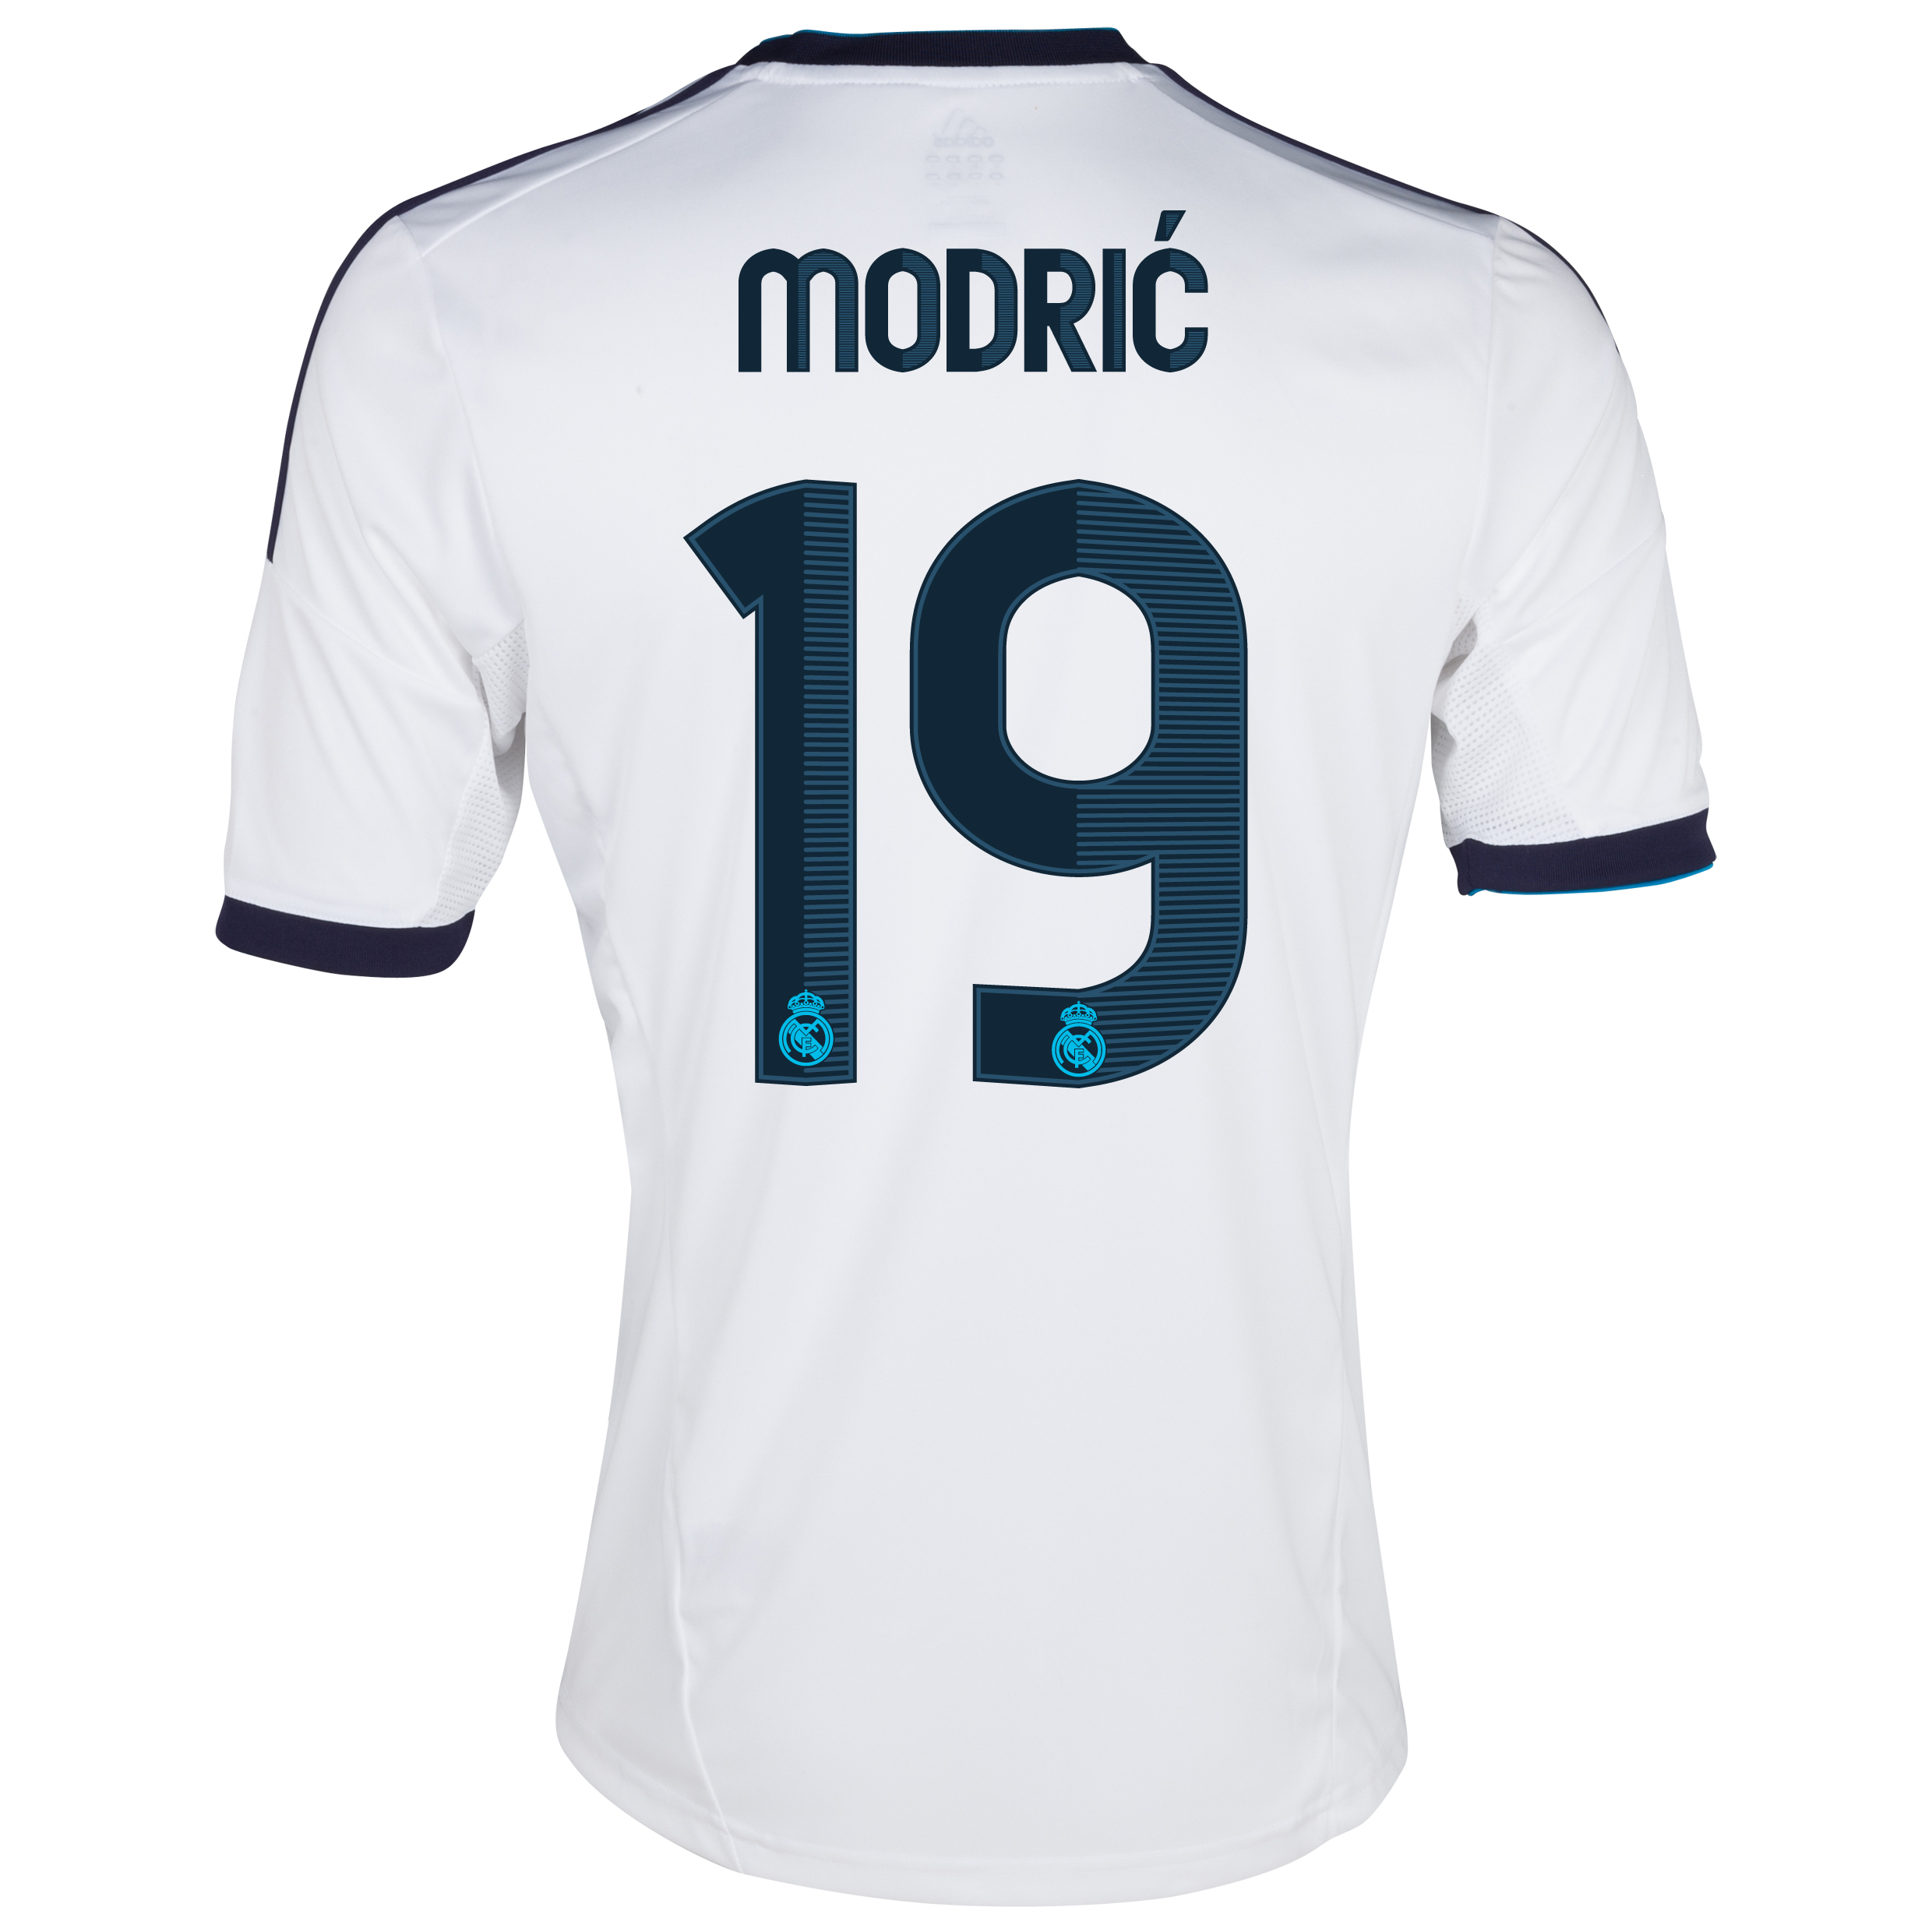 Camiseta 1 Equipacin del Real Madrid 2012/13 - Cadete con Modric N19